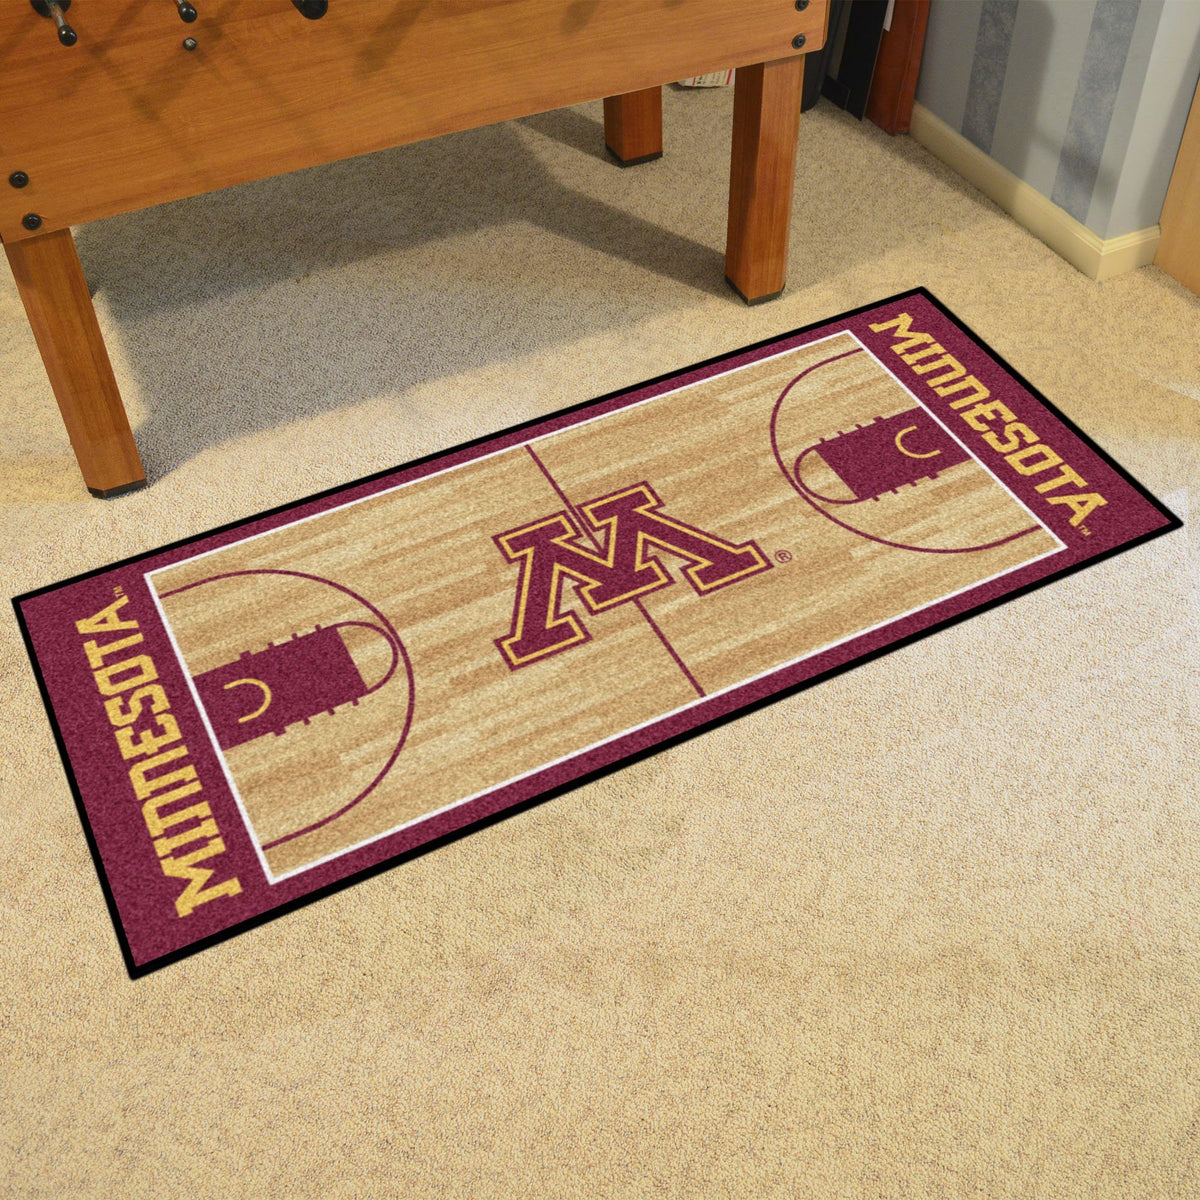 Collegiate - NCAA Basketball Runner Collegiate Mats, Rectangular Mats, NCAA Basketball Runner, Collegiate, Home Fan Mats Minnesota